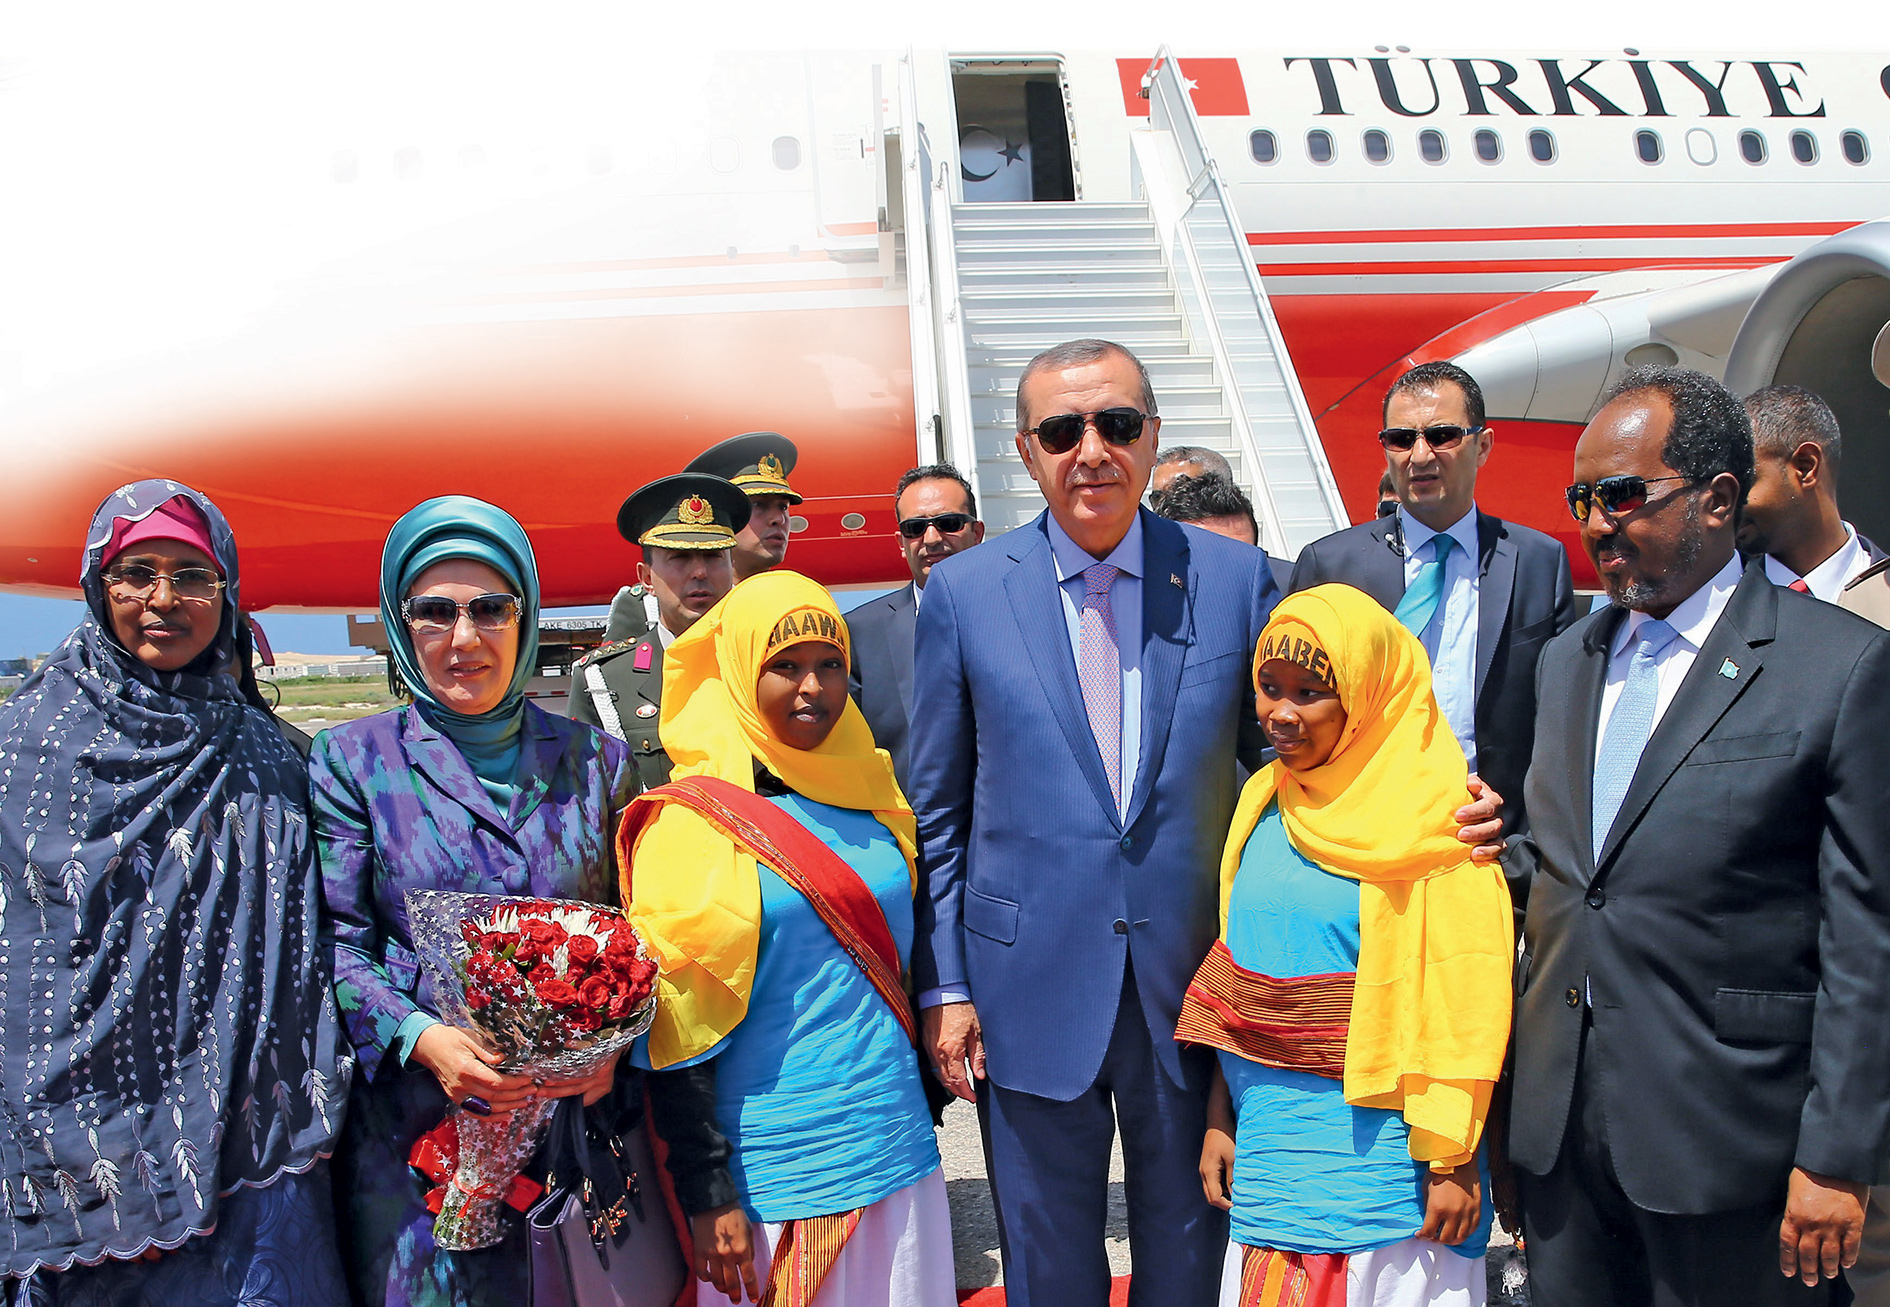 Special relationship: Turkish President Recep Erdoğan and his wife are welcomed to Mogadishu by then-President of Somalia, Sheikh Mohamoud in 2016.